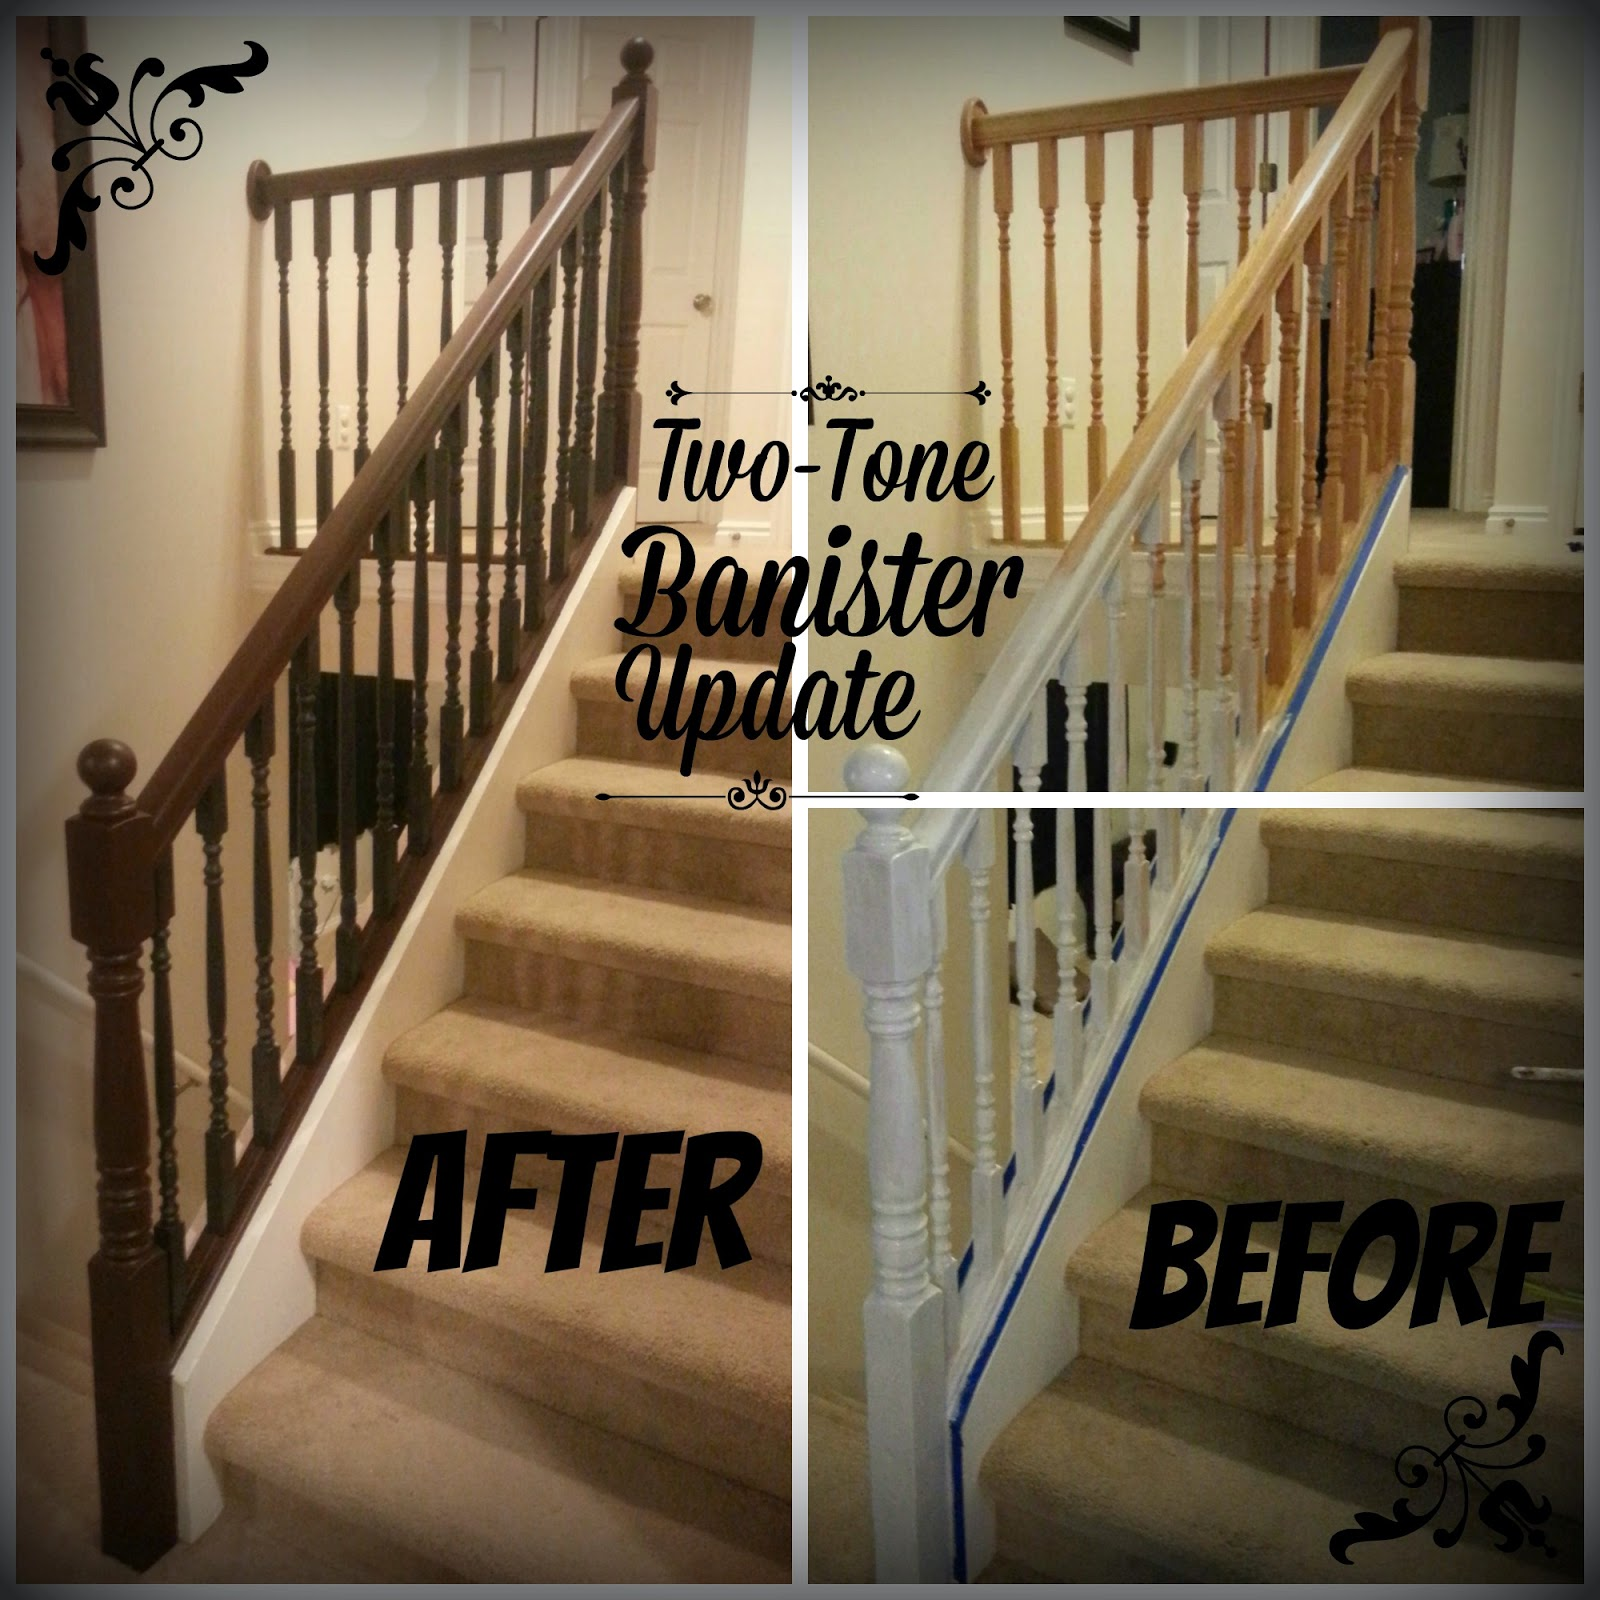 Good Times Two Tone Banister Update